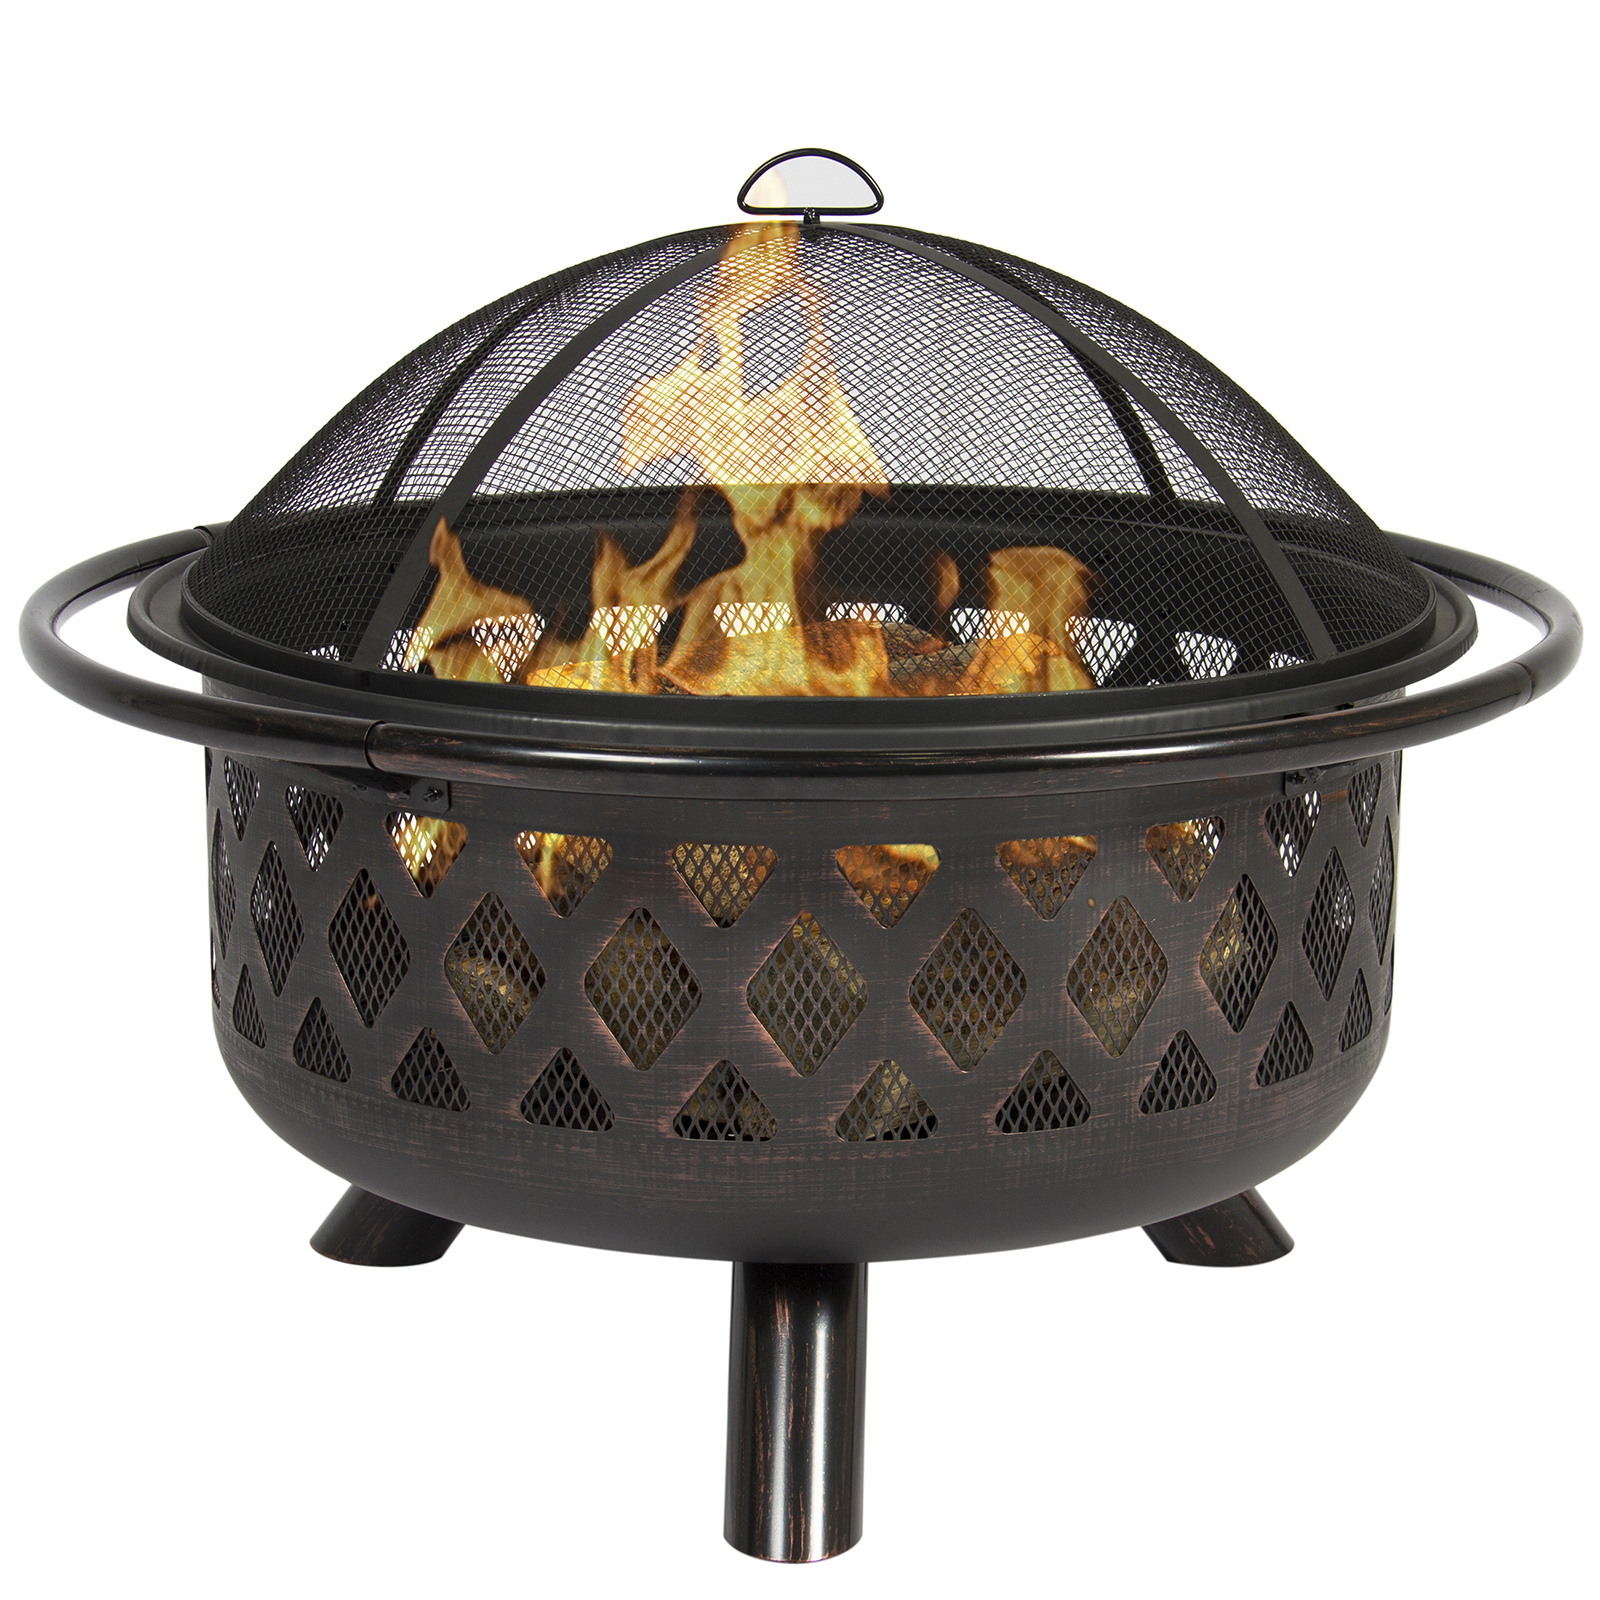 "Best Choice Products 36"" Bronze Finish Firebowl Firepit Patio Backyard Outdoor Garden... by Best Choice Products"